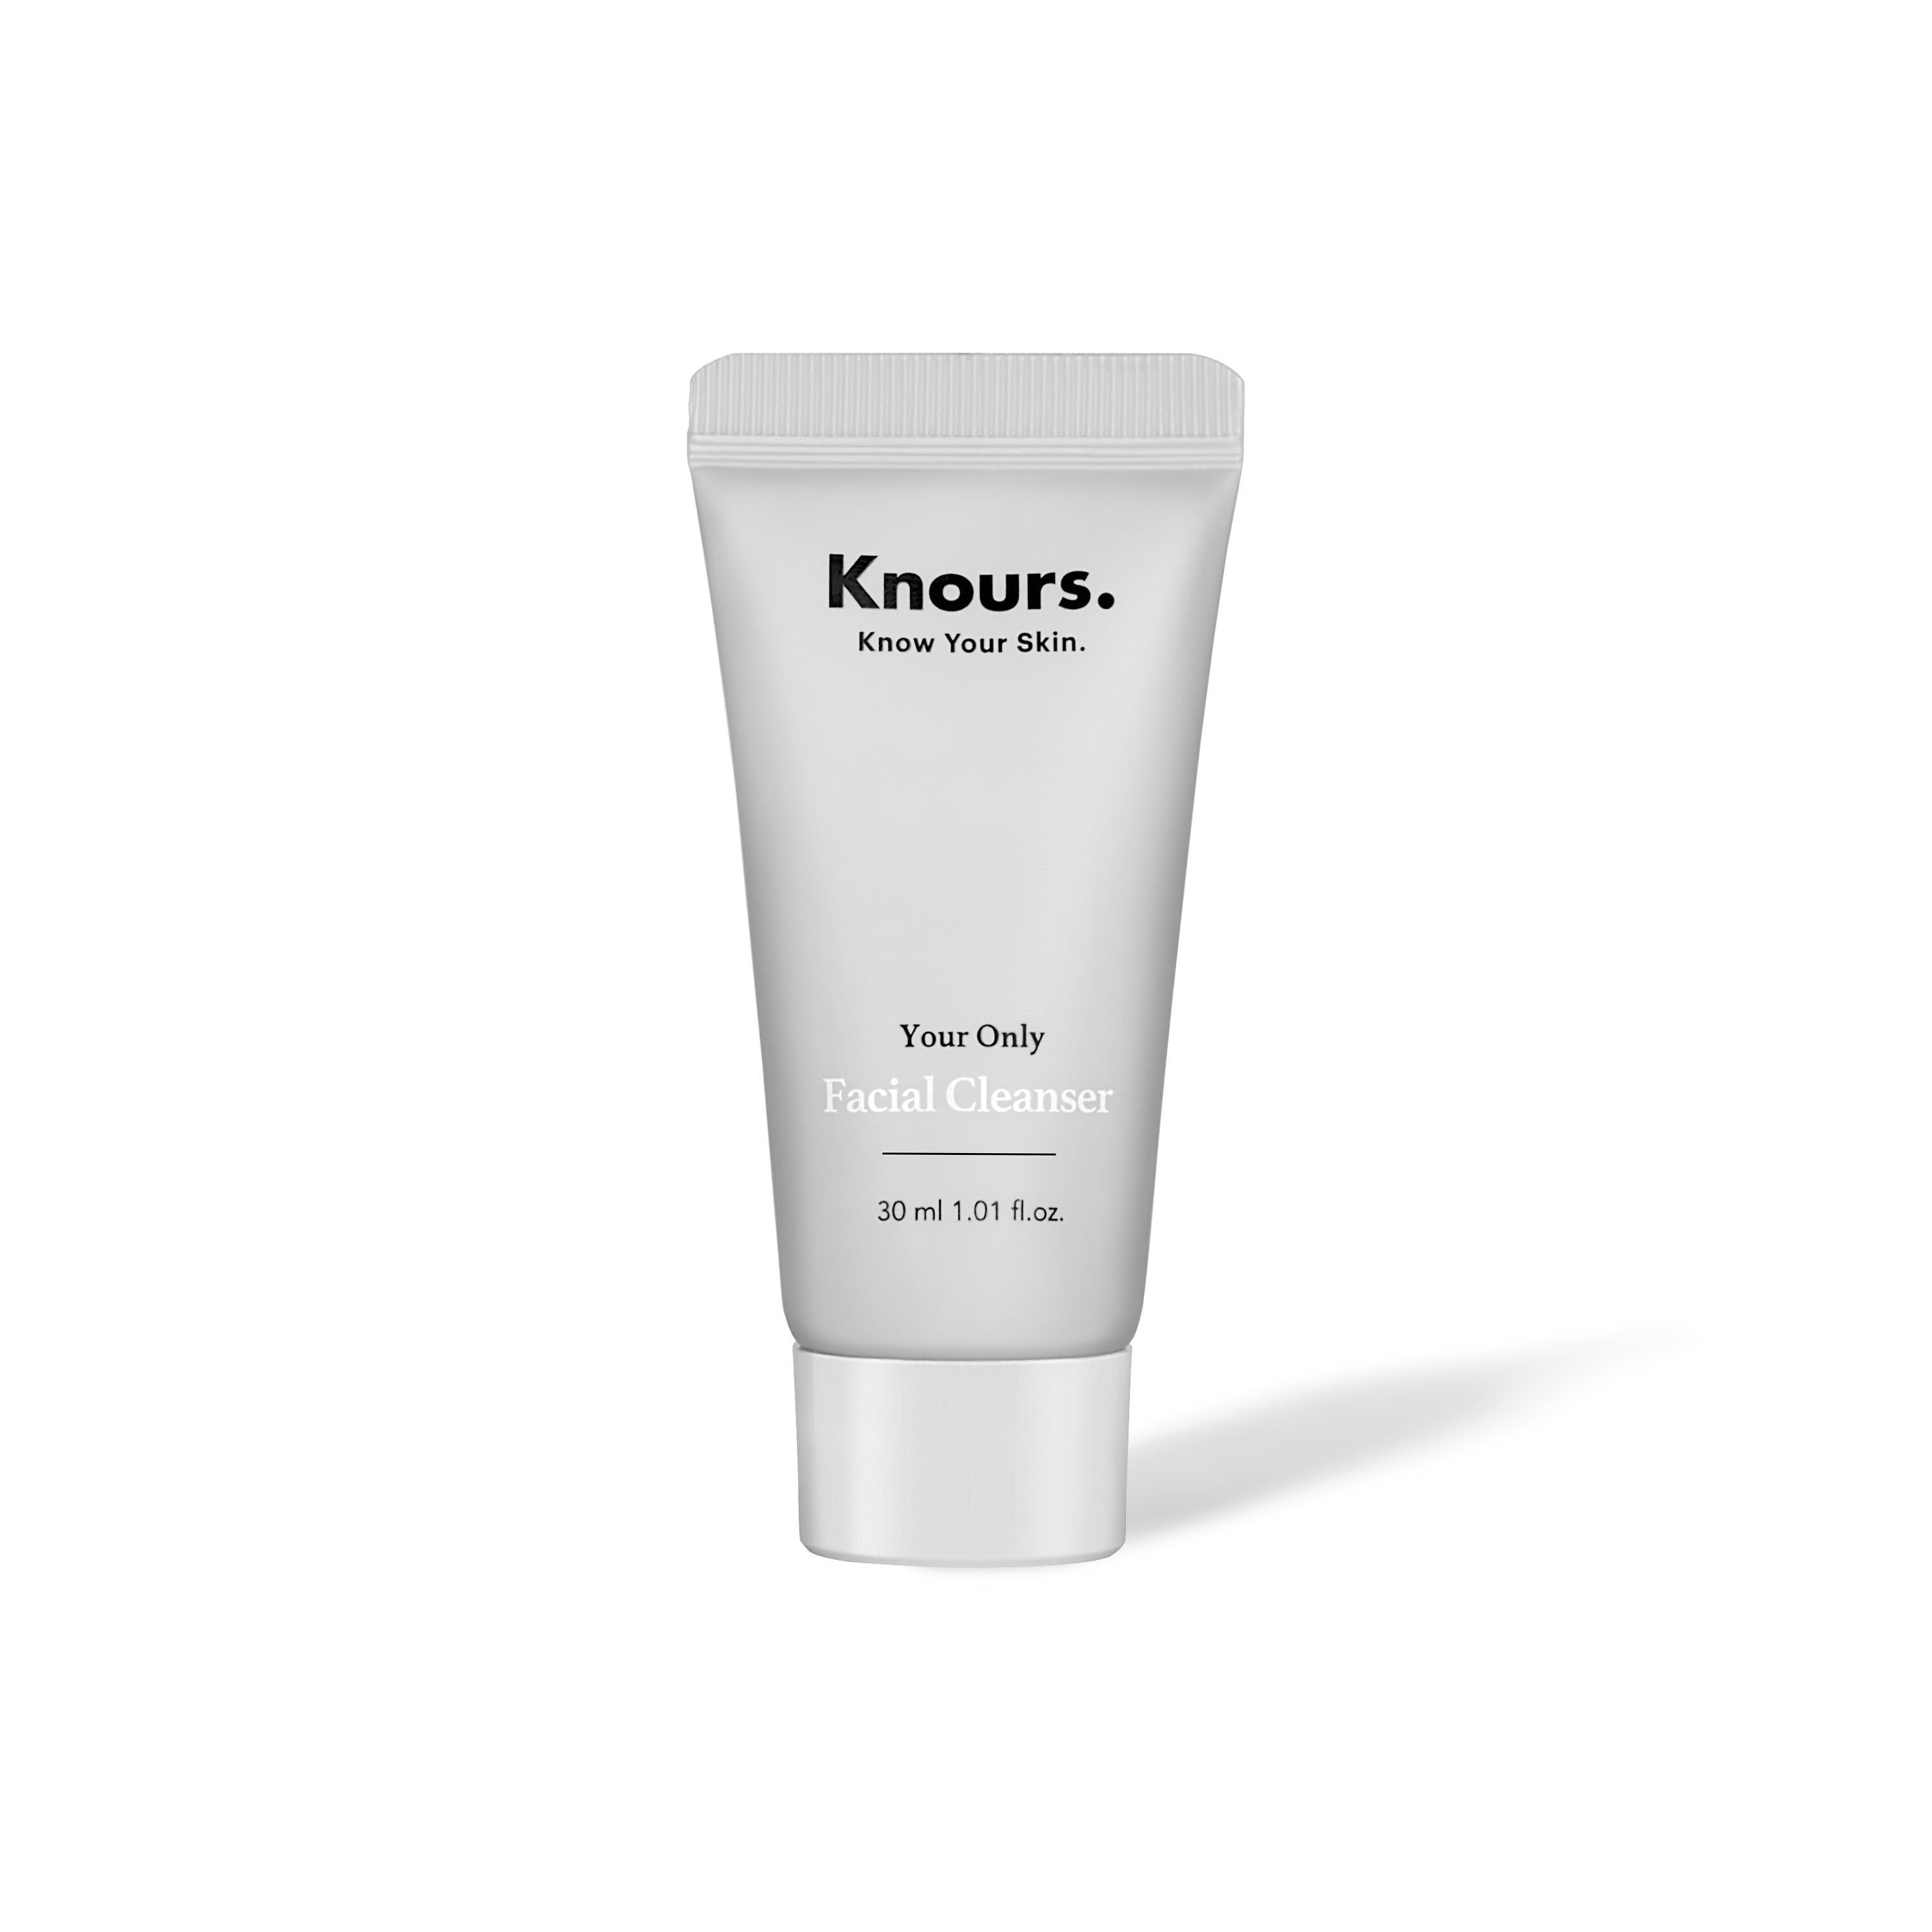 Your Only Facial Cleanser - Plump Shop